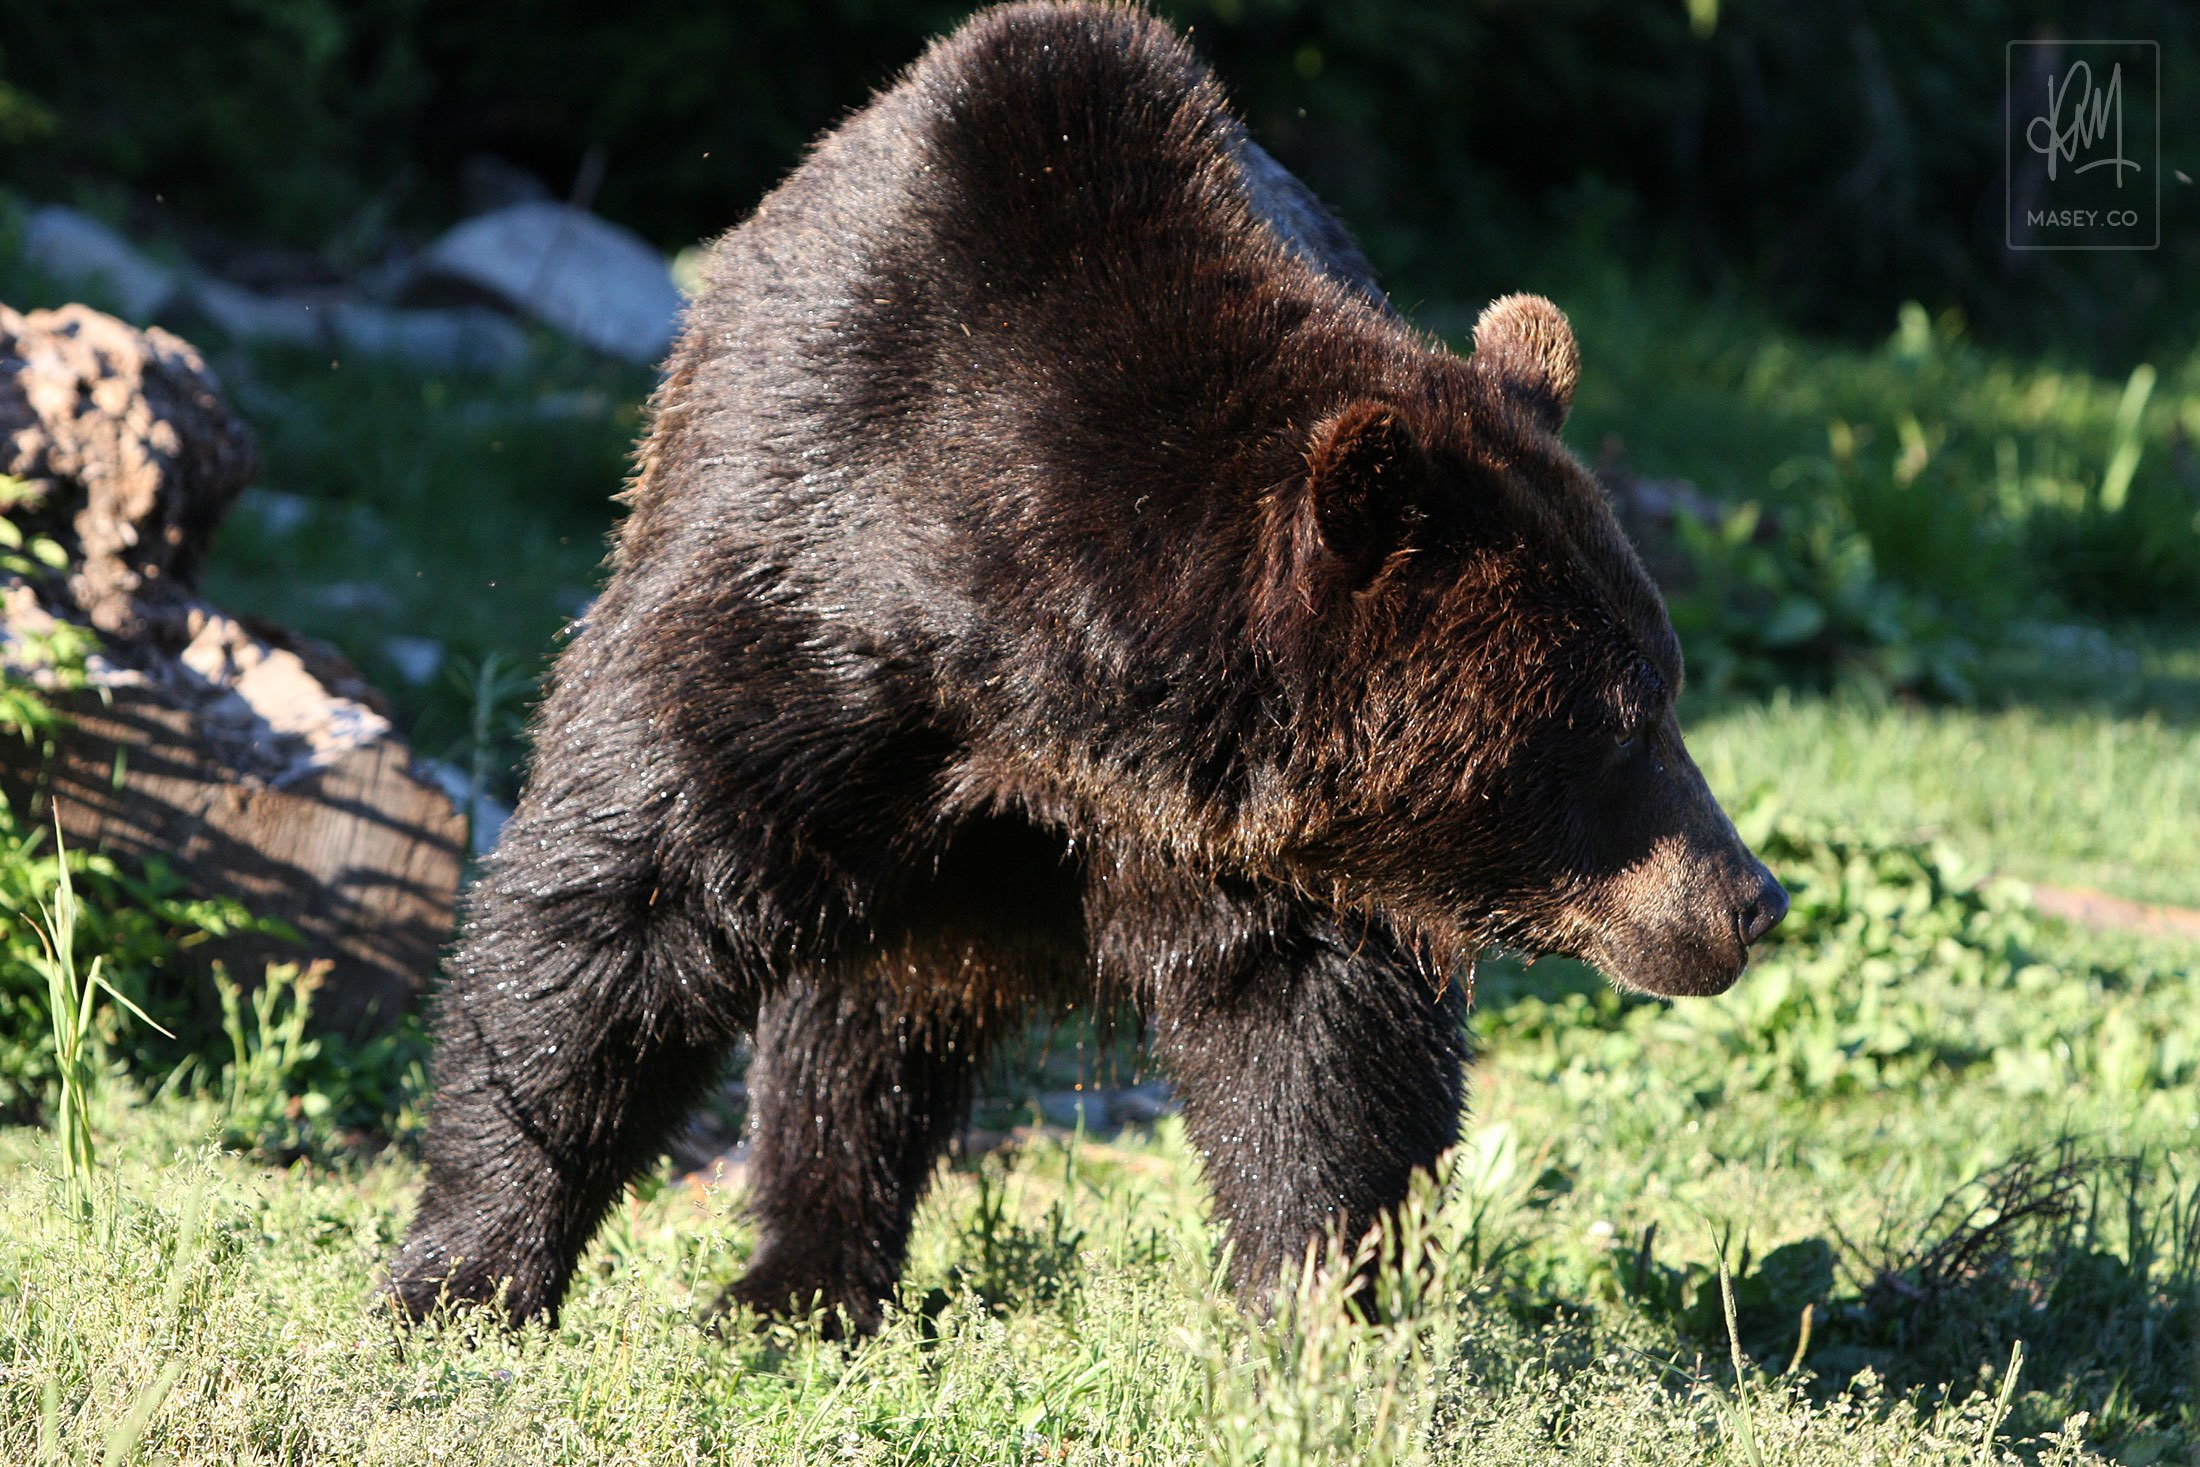 Grouse Mountain's Grizzlies